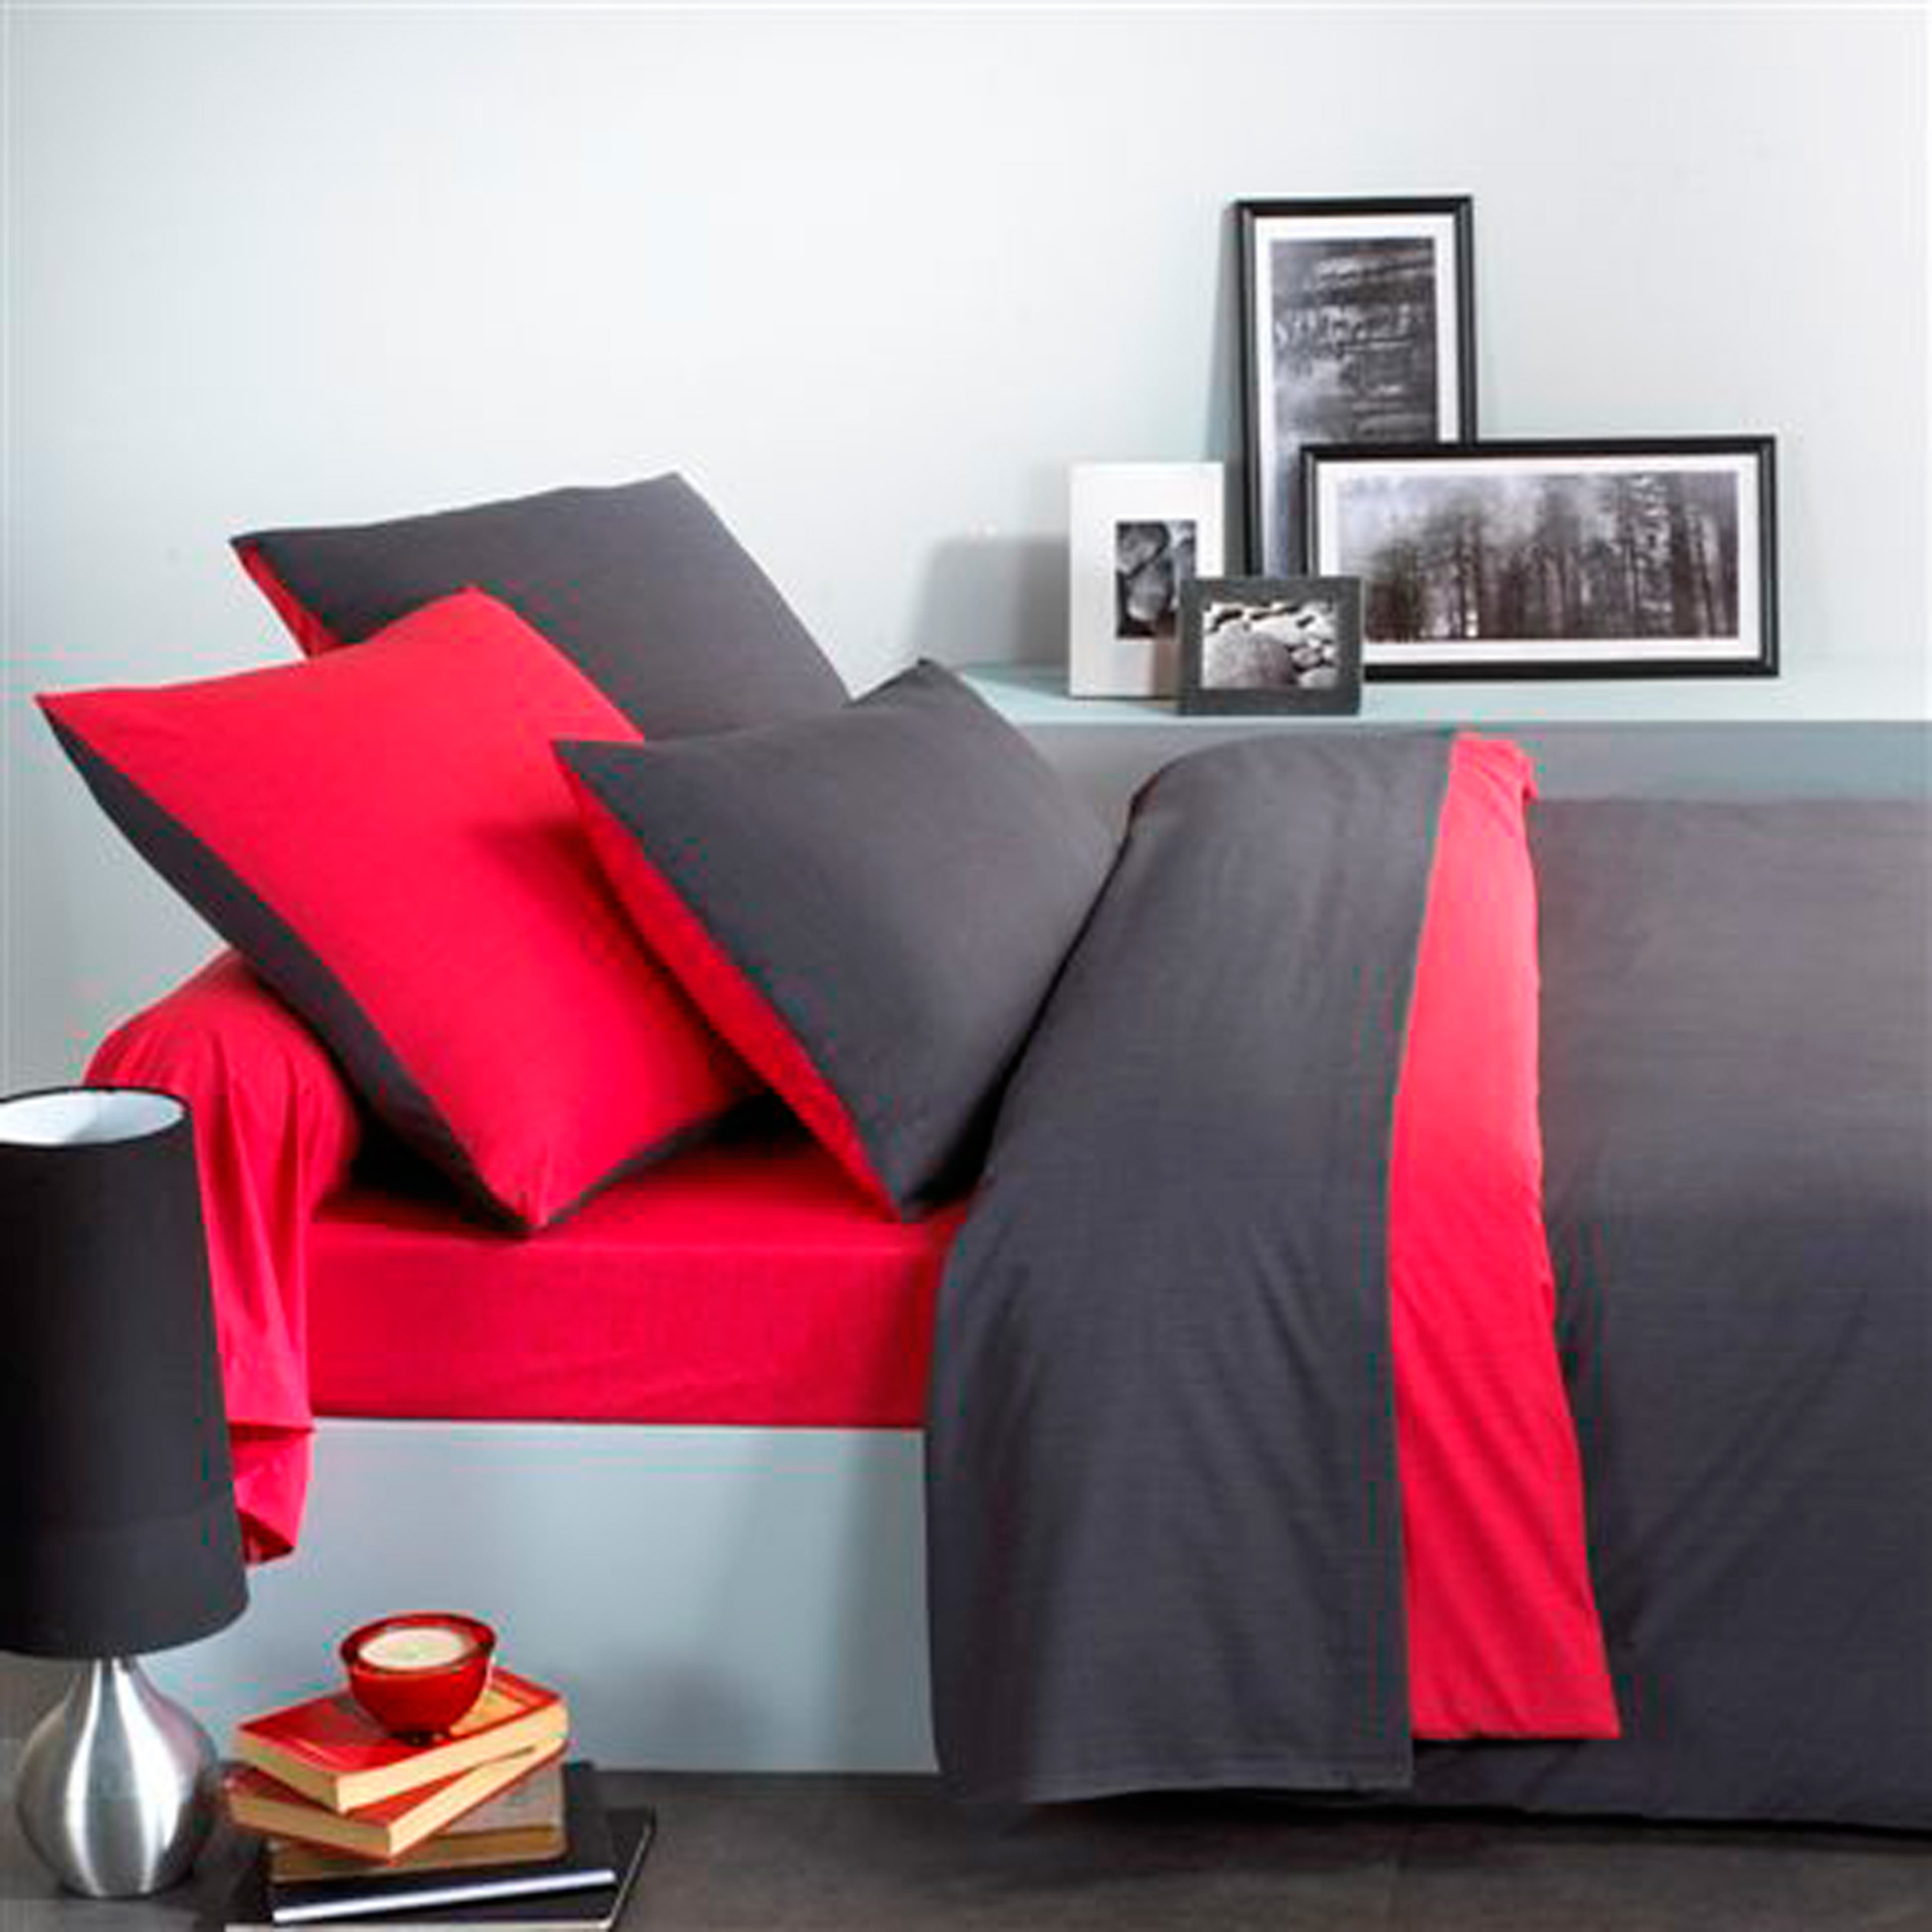 parure de drap 2 pers ecorce rouge noir 240 x 300 cm. Black Bedroom Furniture Sets. Home Design Ideas